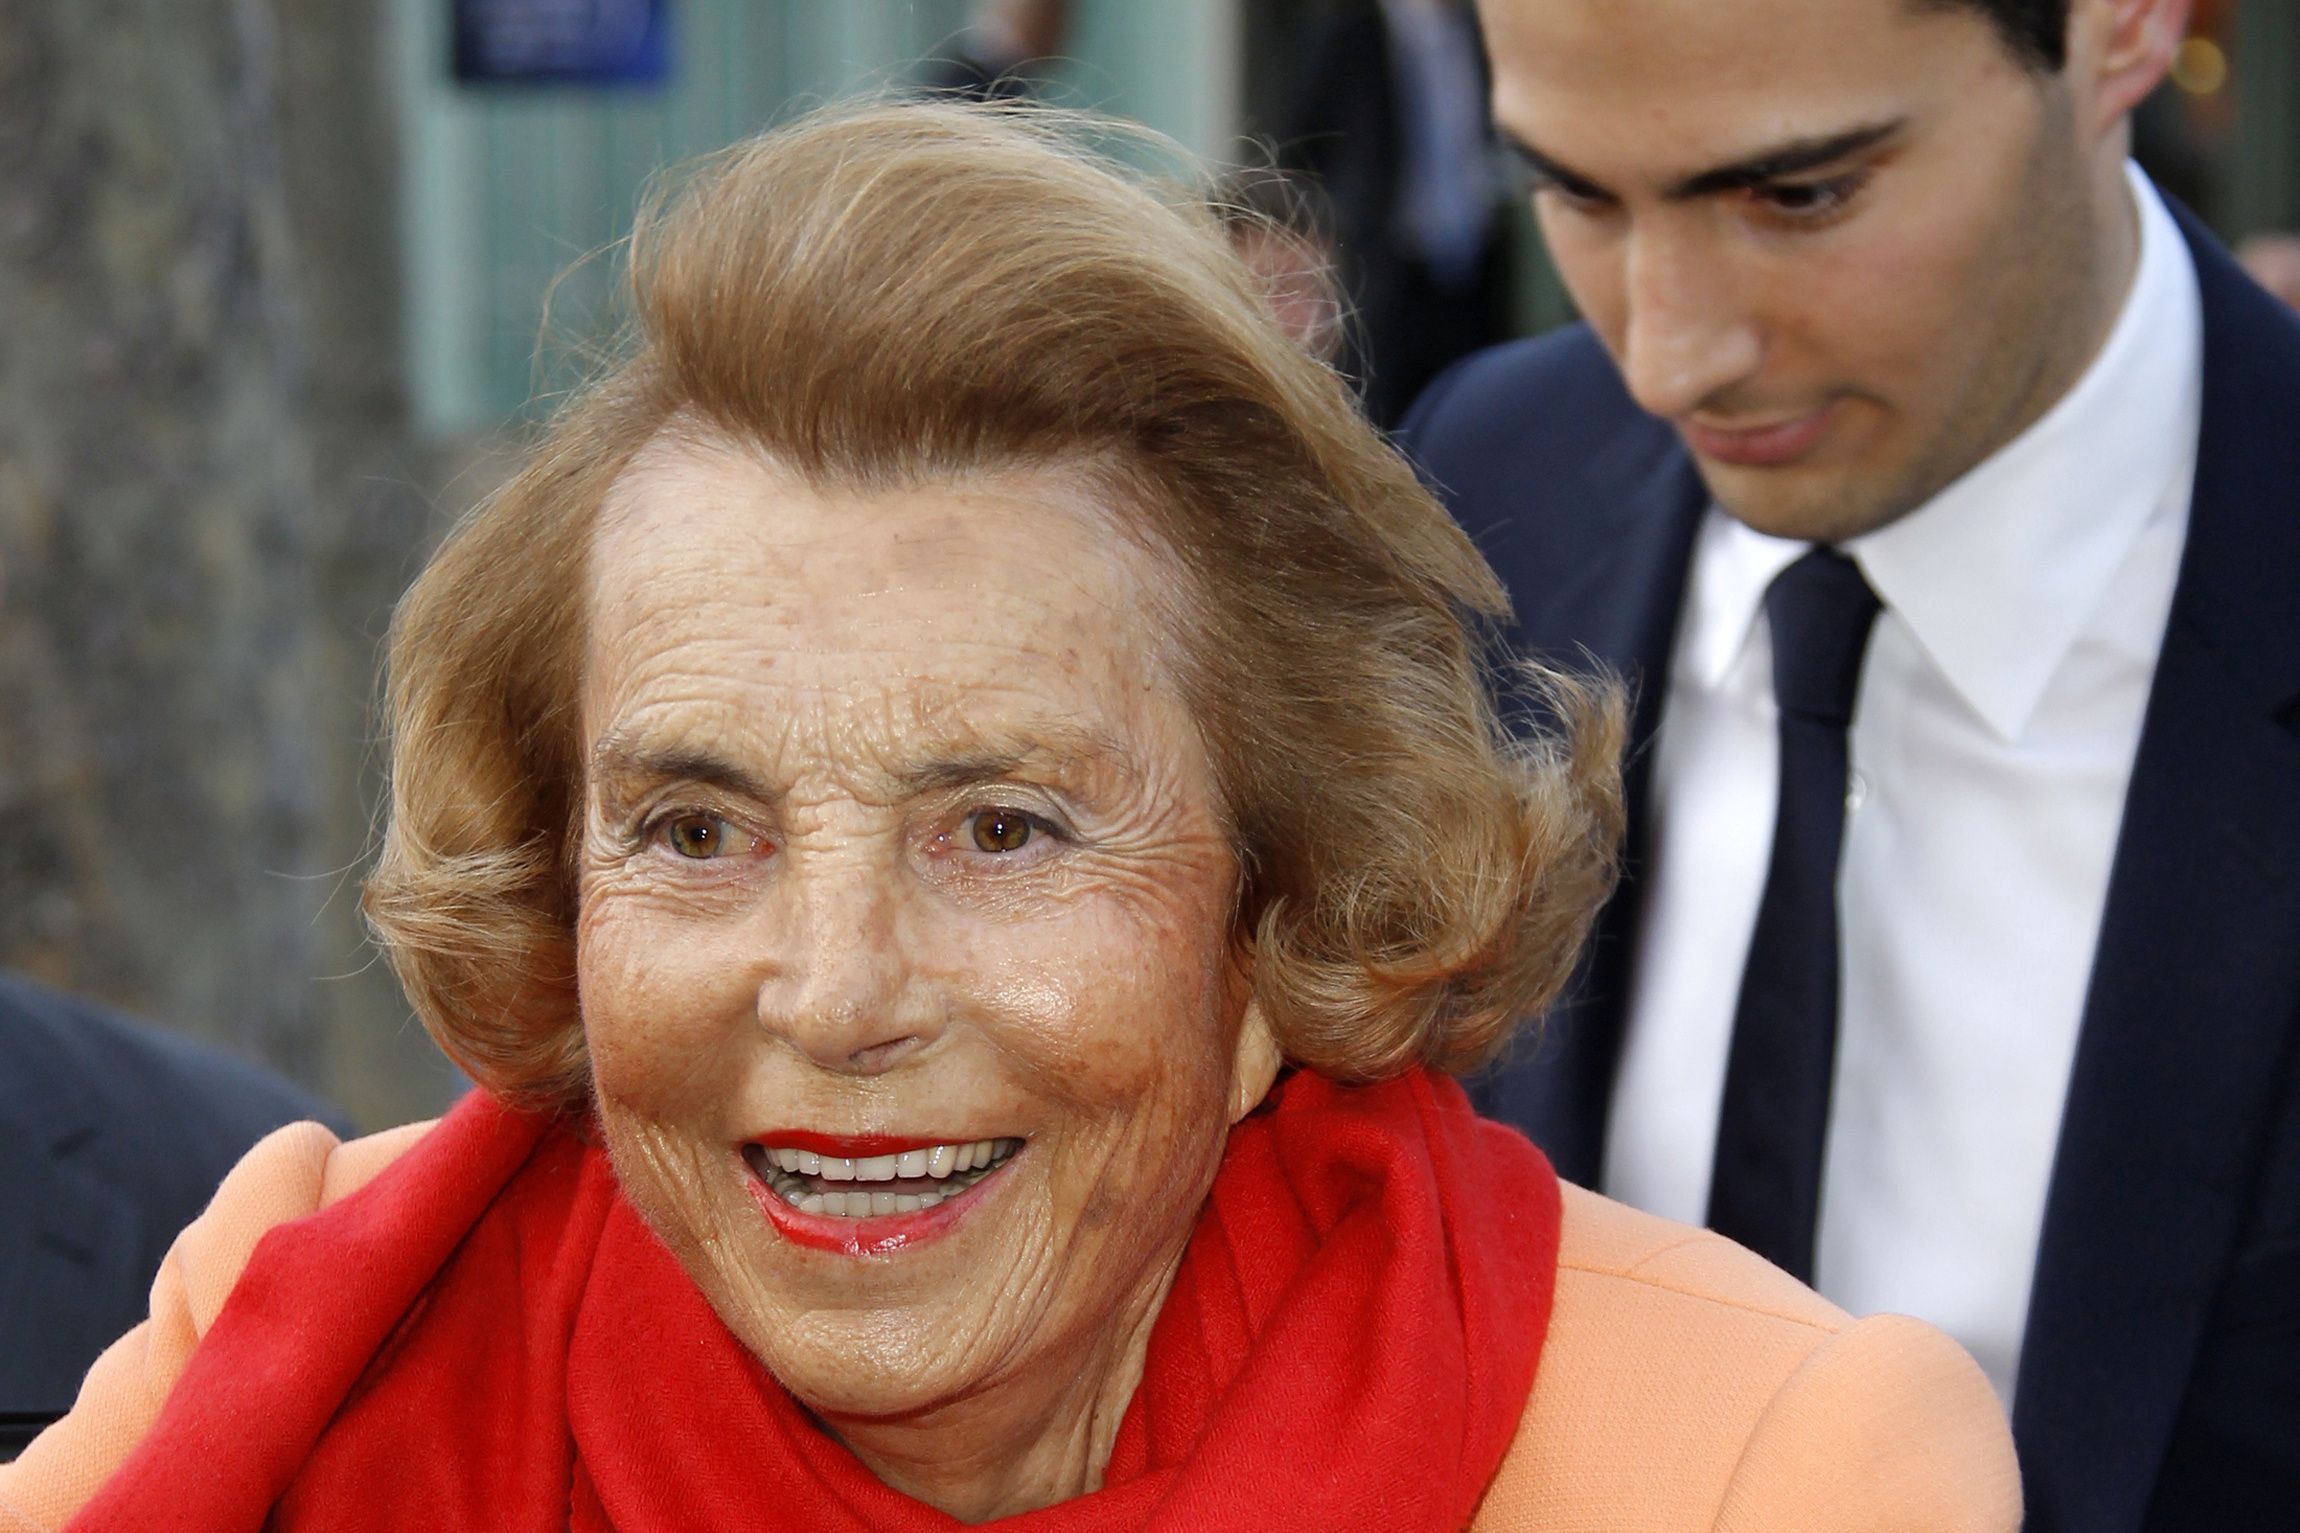 L'Oreal's Liliane Bettencourt, the world's richest woman, dies